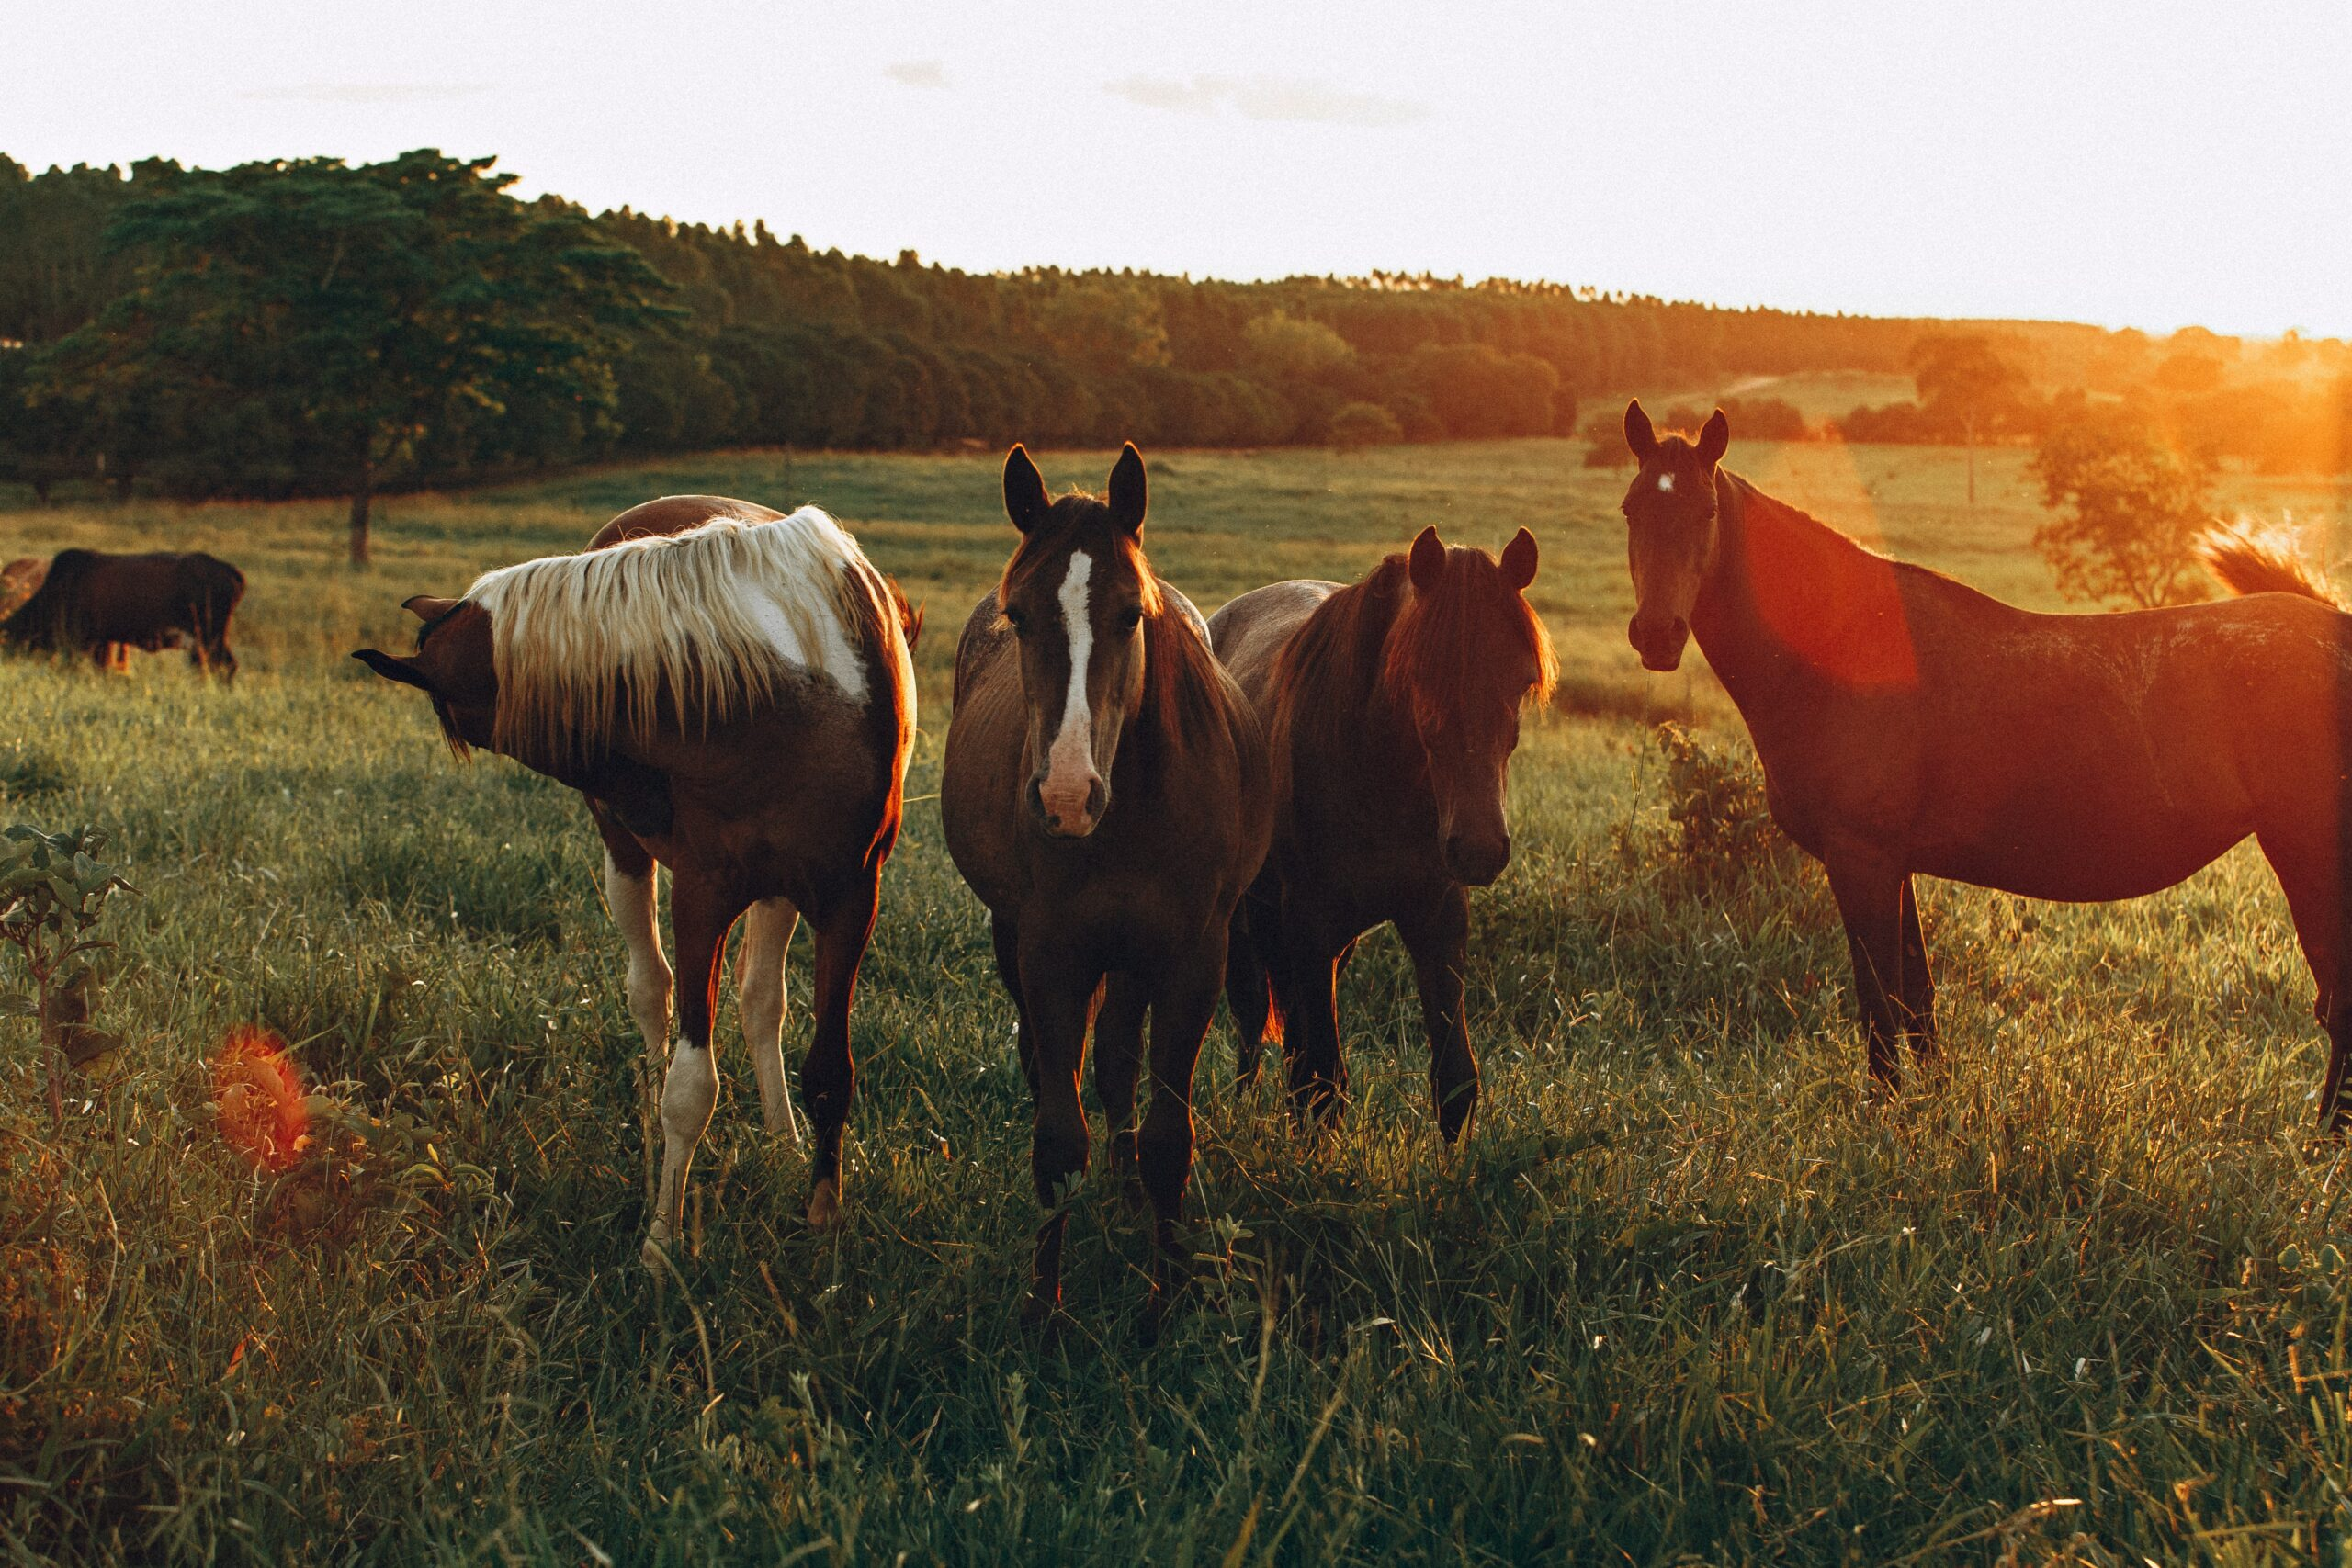 Overstocking horses in a field increases risk of parasites